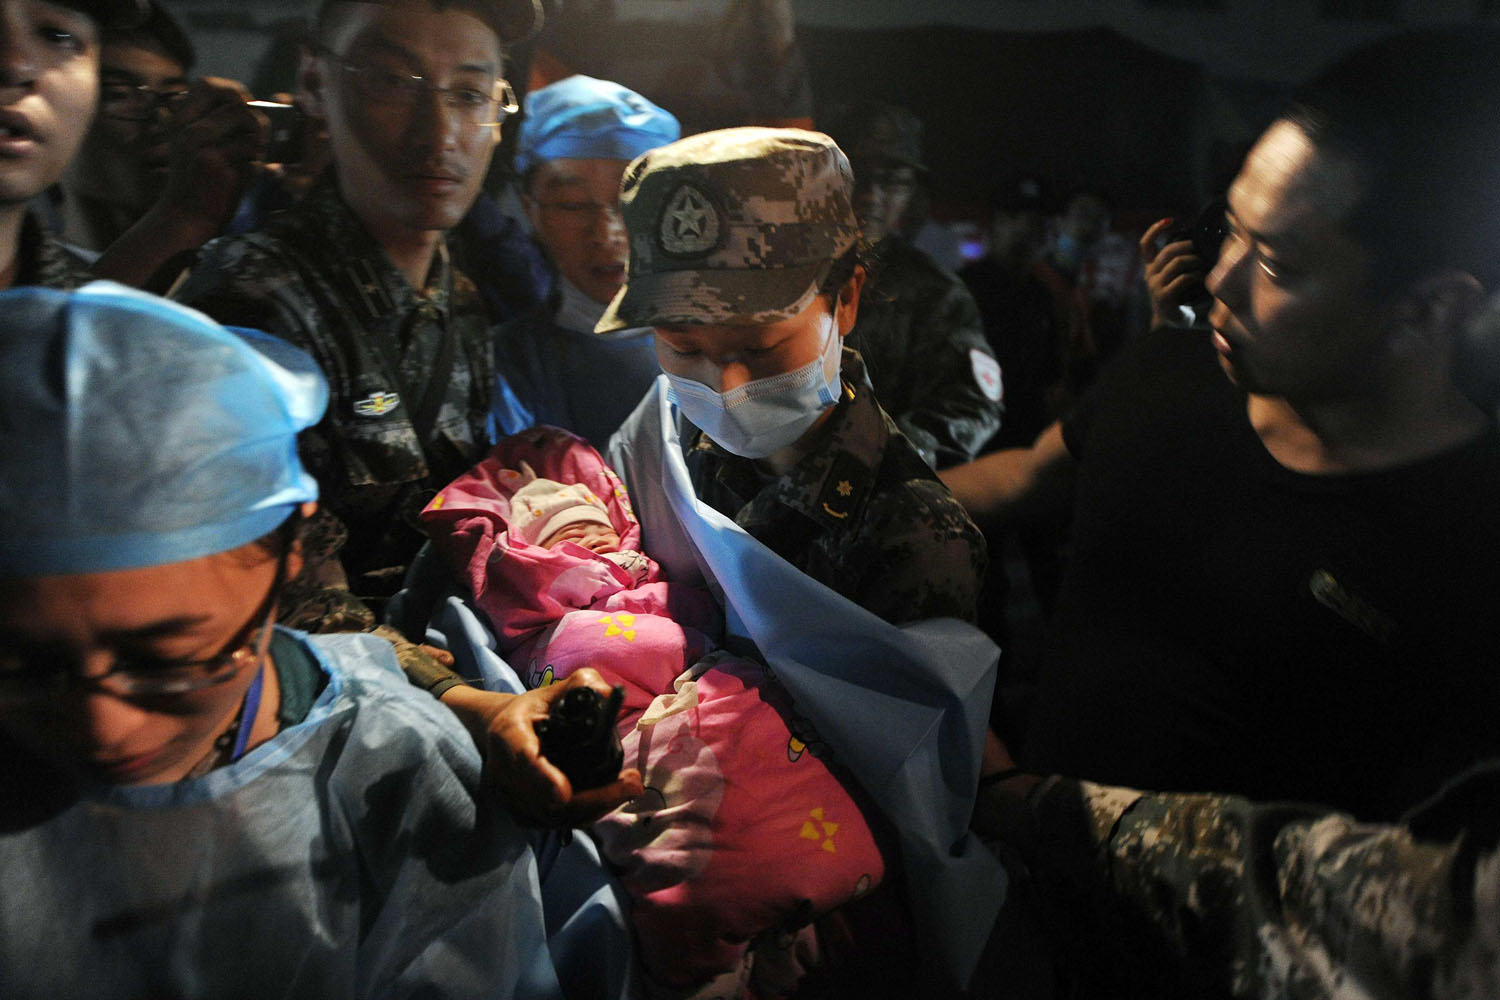 April 22, 2013. A new-born baby which was born in a relief tent is attended by medical staff after an earthquake, which claimed nearly 200 lives, hit Lushan county, Ya'an, Sichuan province.